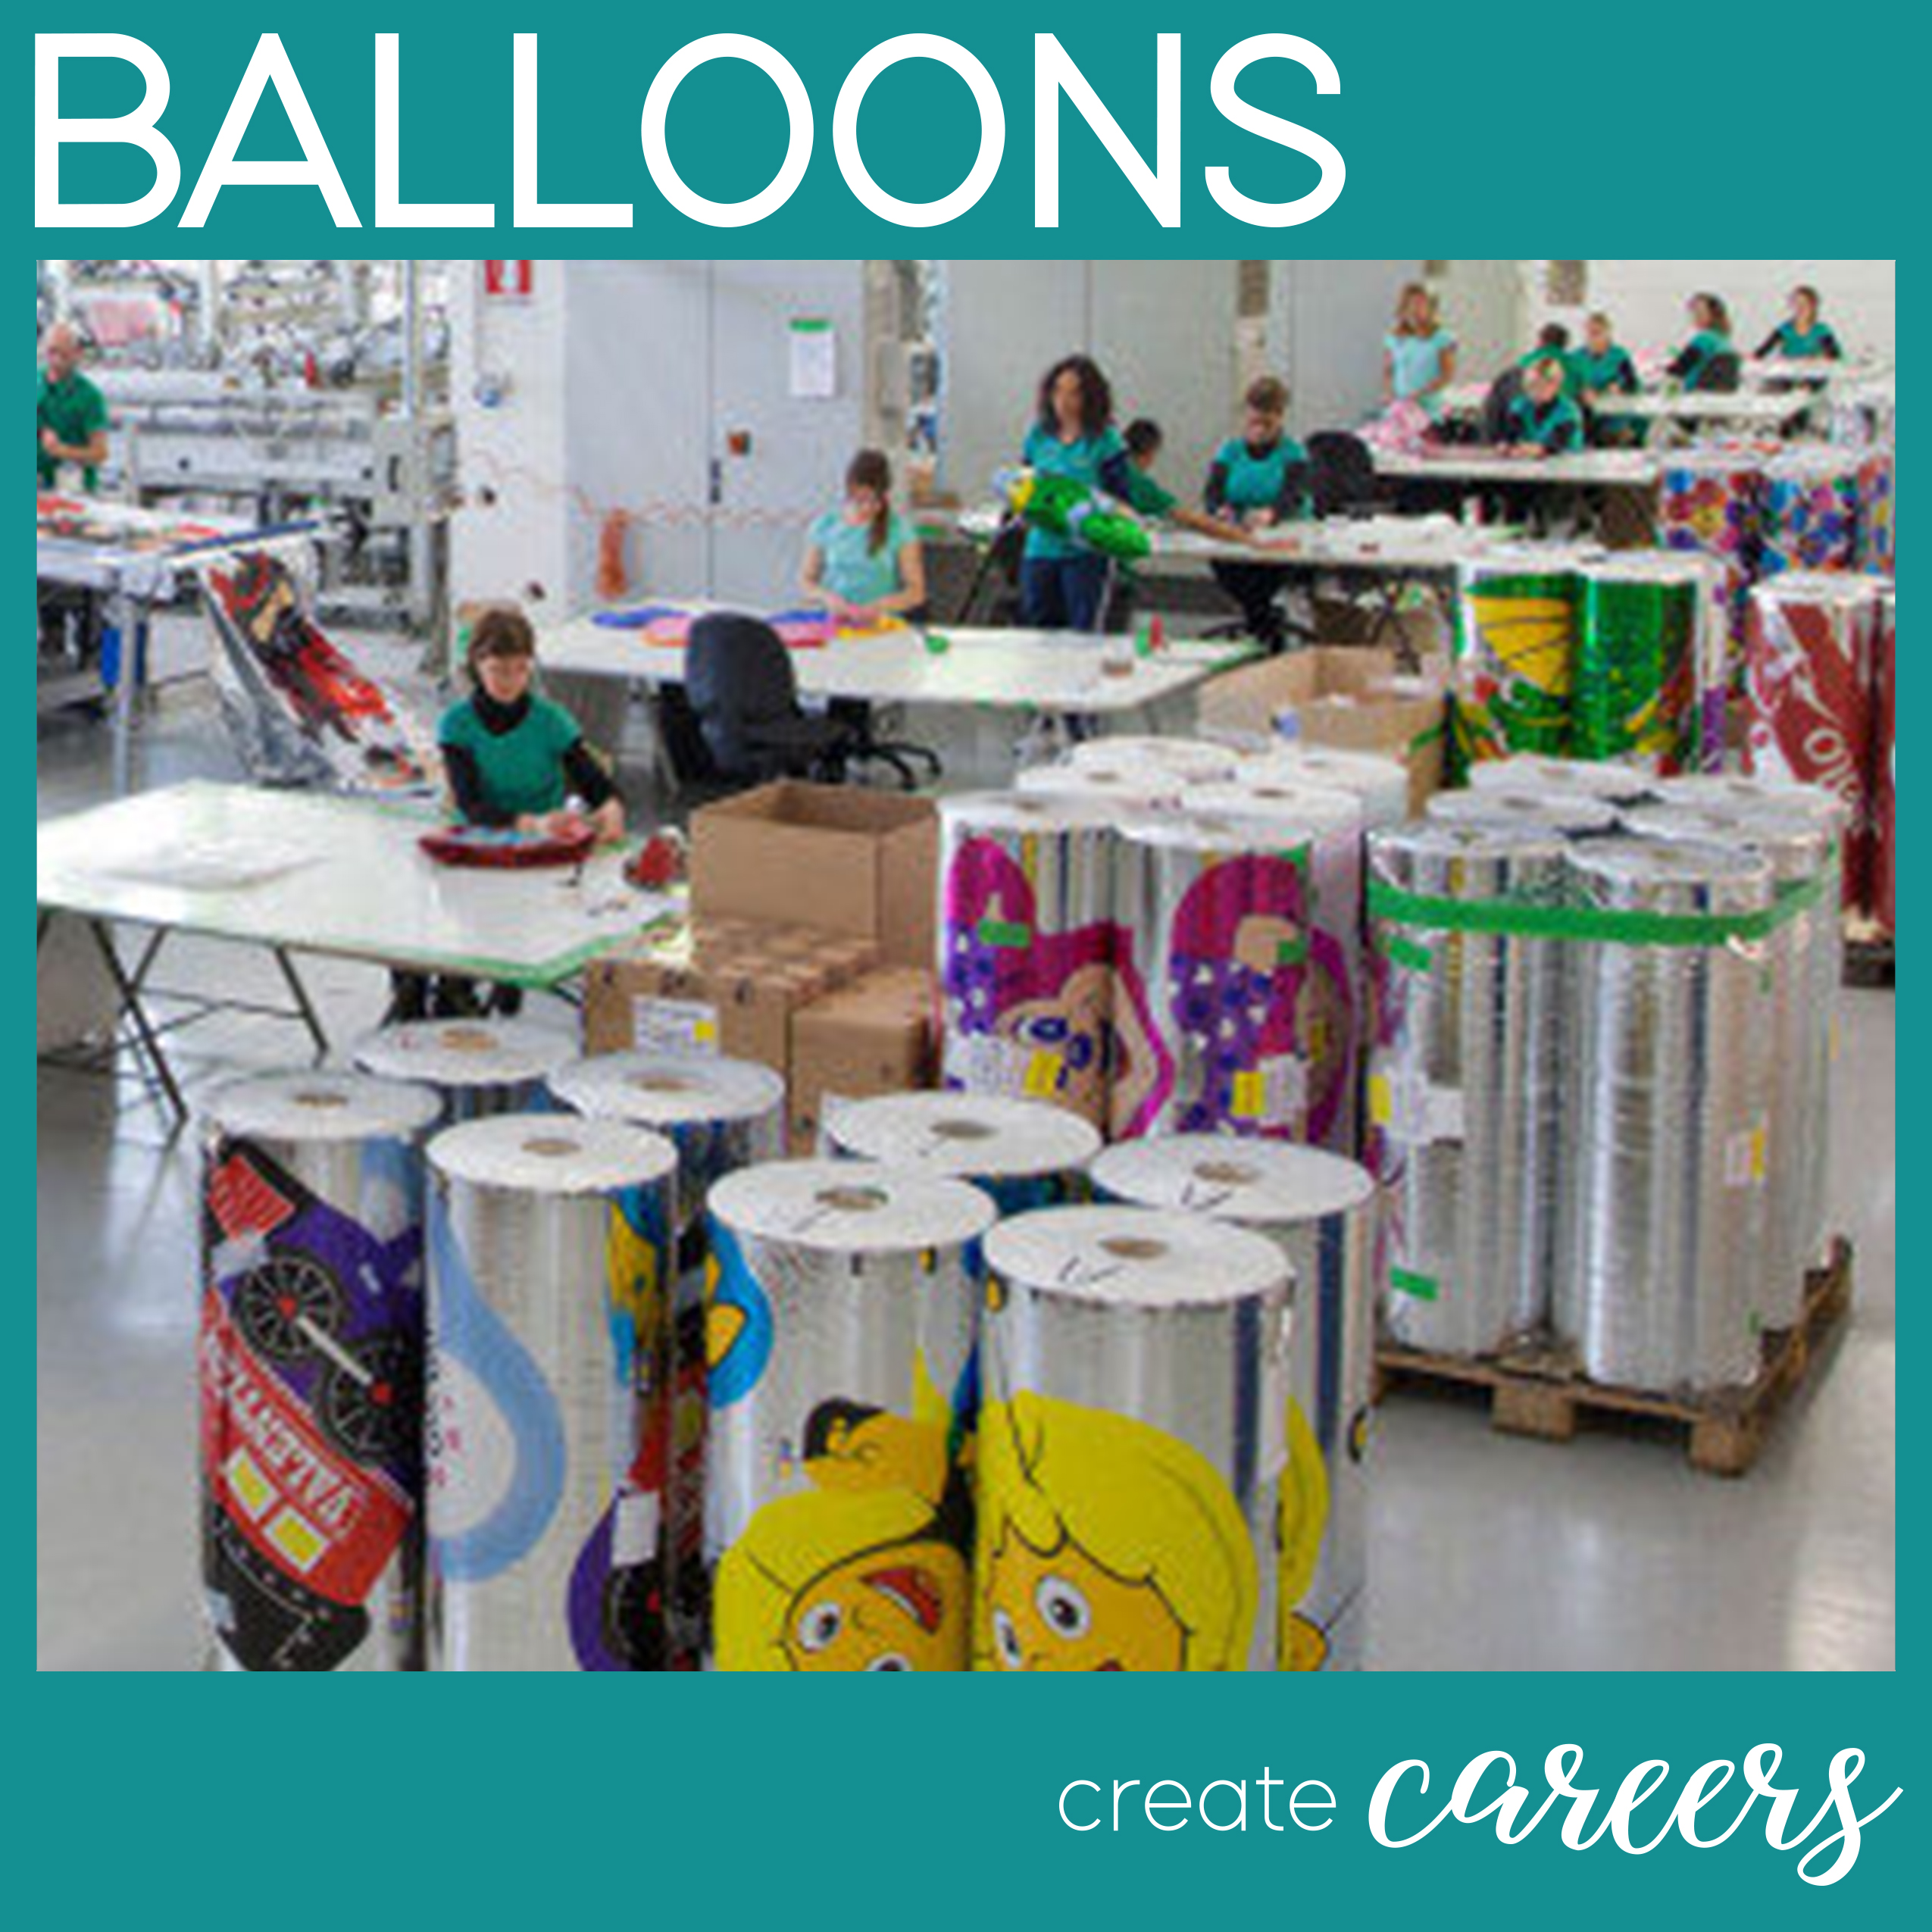 Balloon Facts - Balloons create careers